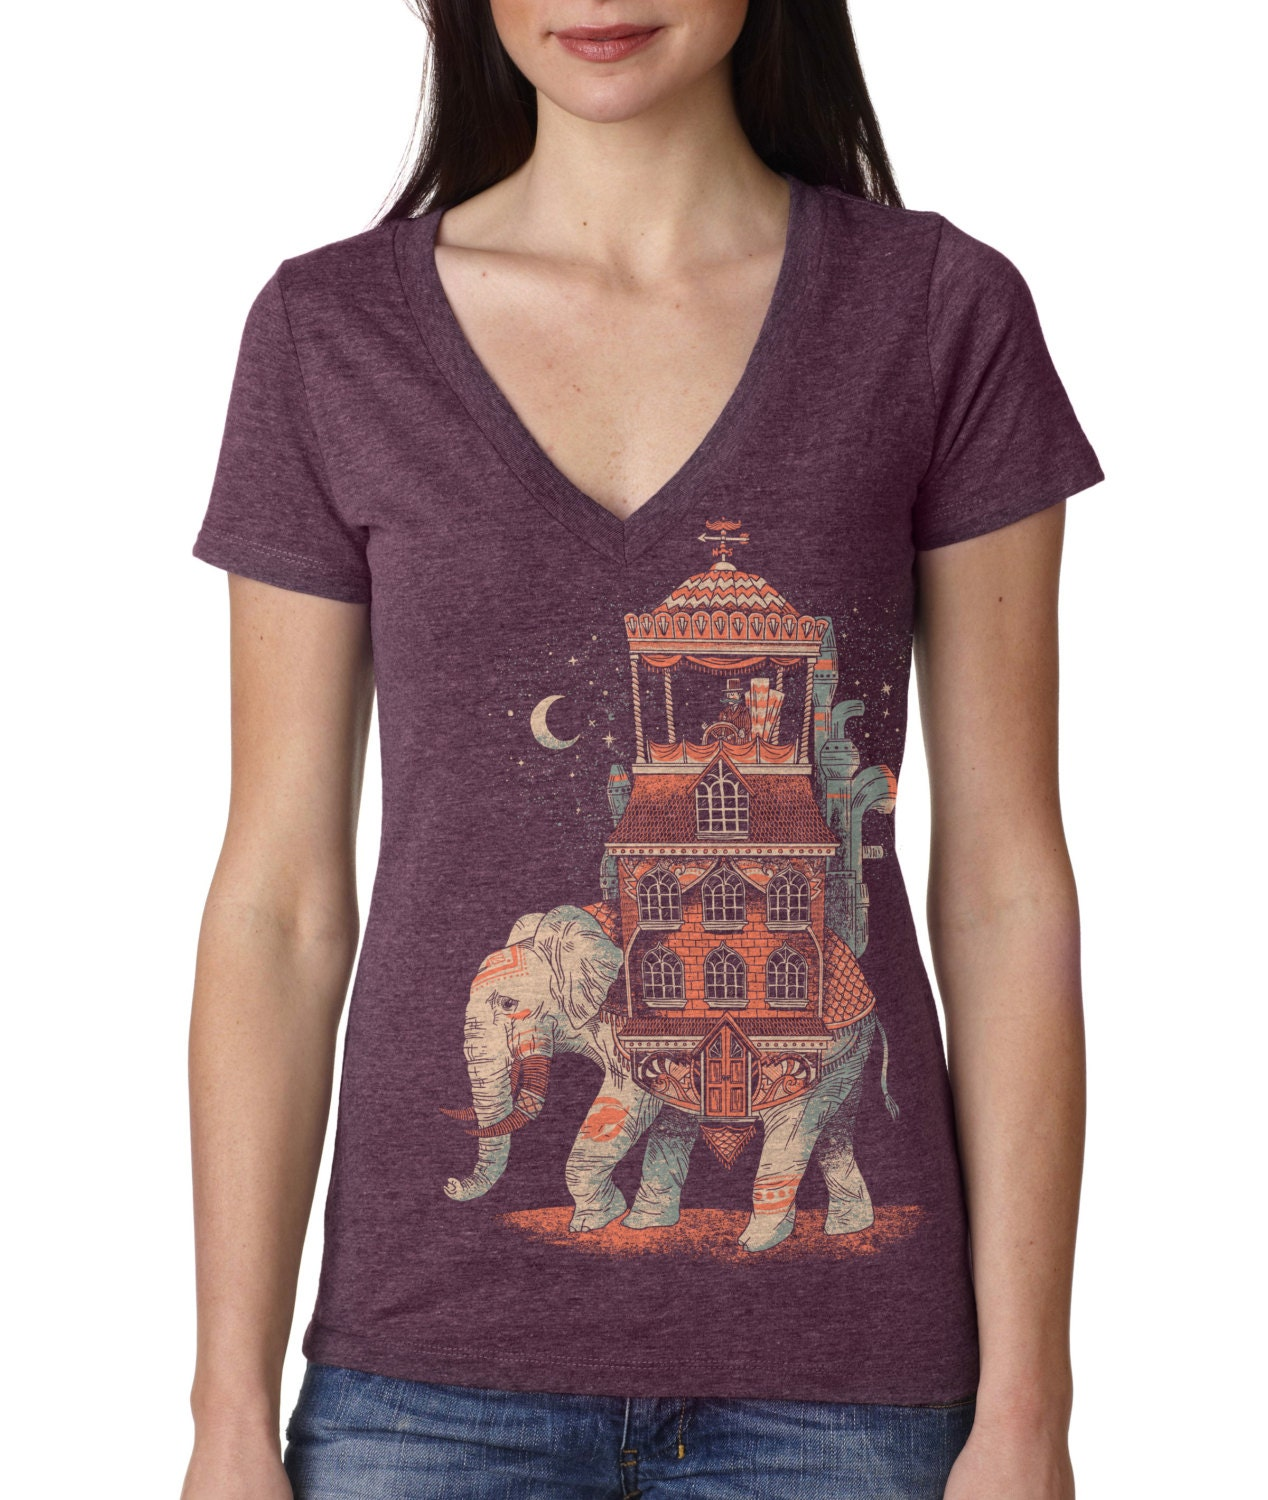 Womens Elephant Traveler T Shirt, India, Animal VNeck, Vintage, Purple, Available in S M L XL XXL - FuzzyInk